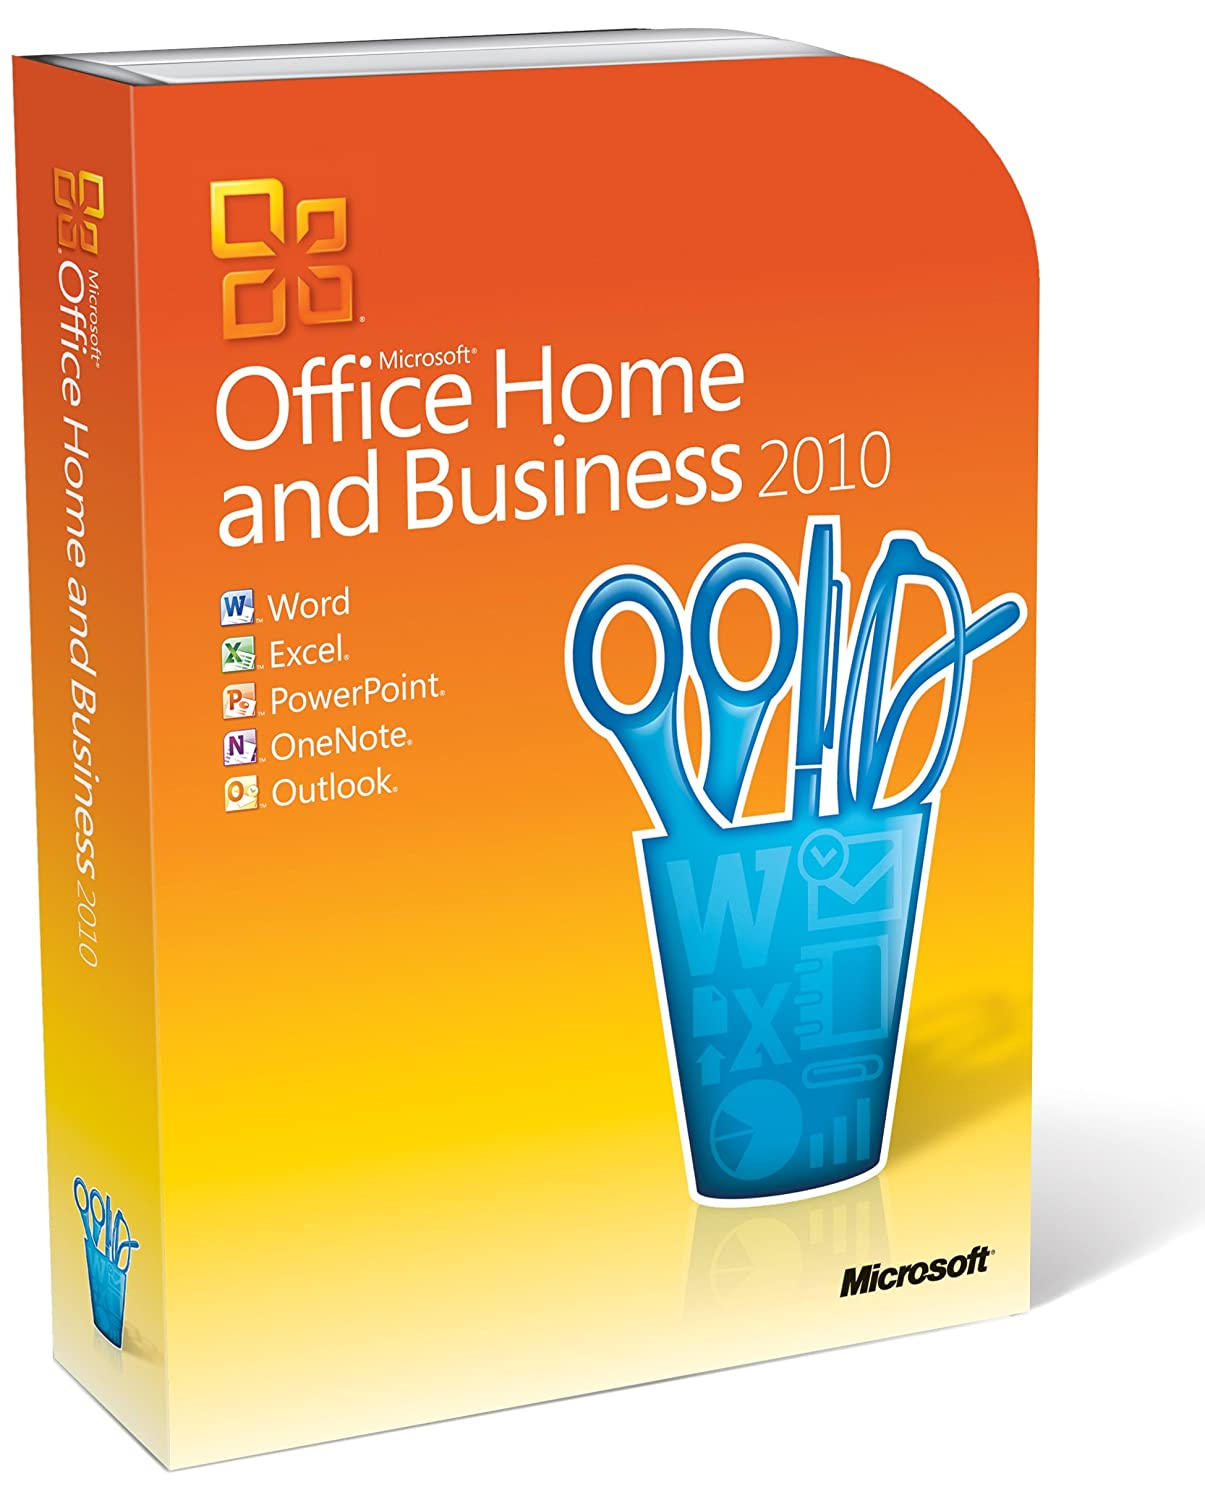 Microsoft Office Home and Business 2010: Amazon.de: Software